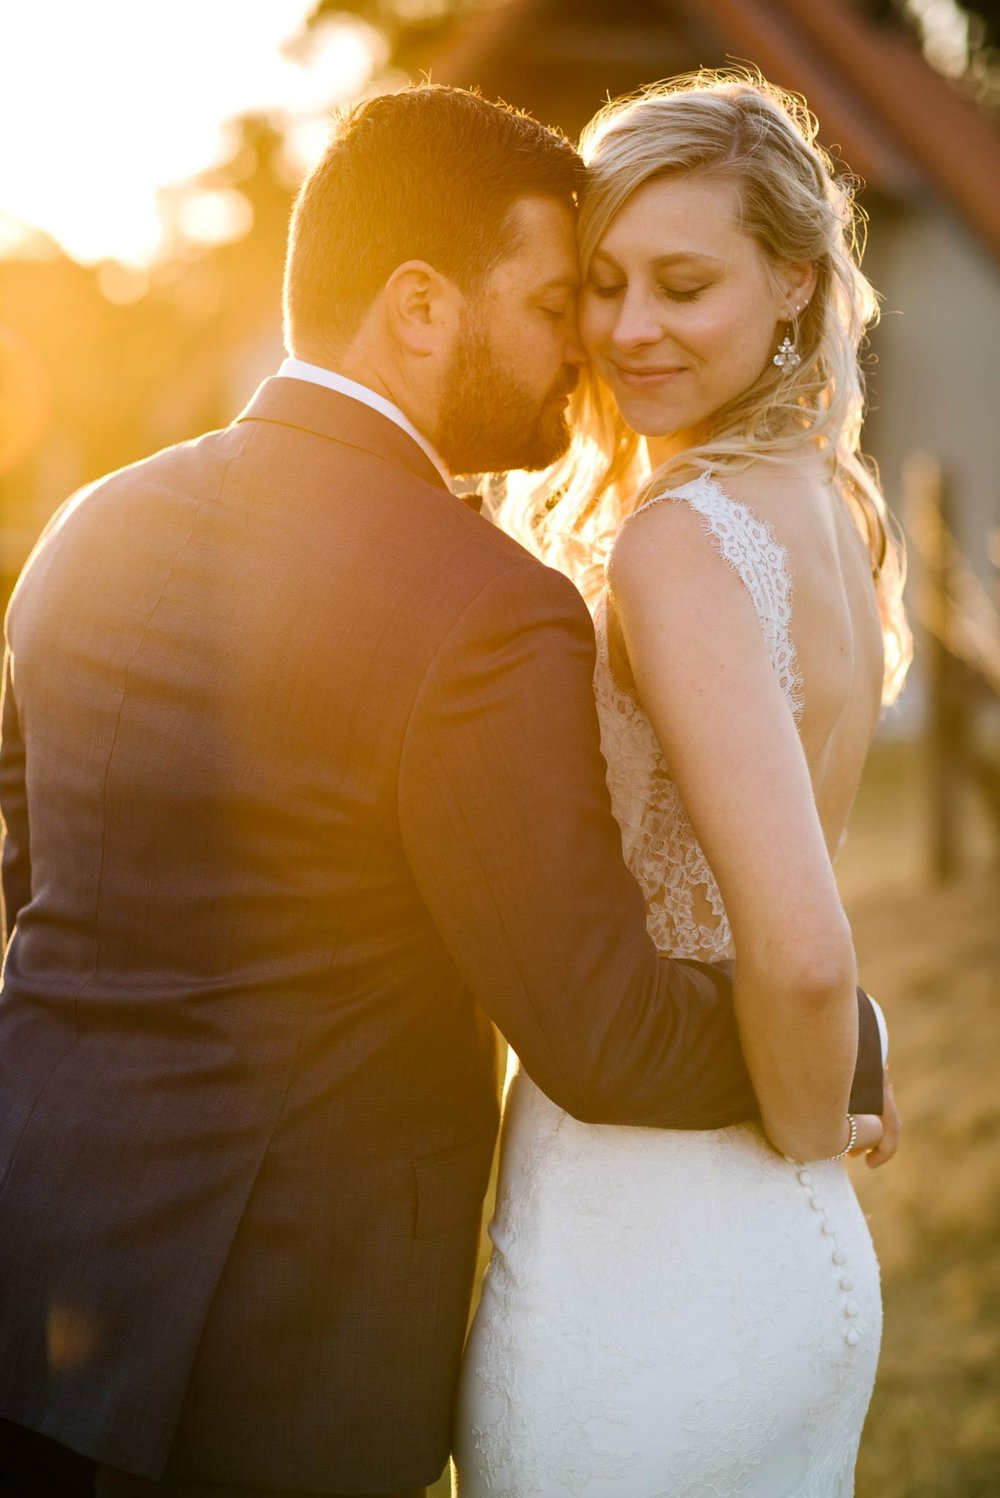 Backlit portrait of bride and groom with eyes closed